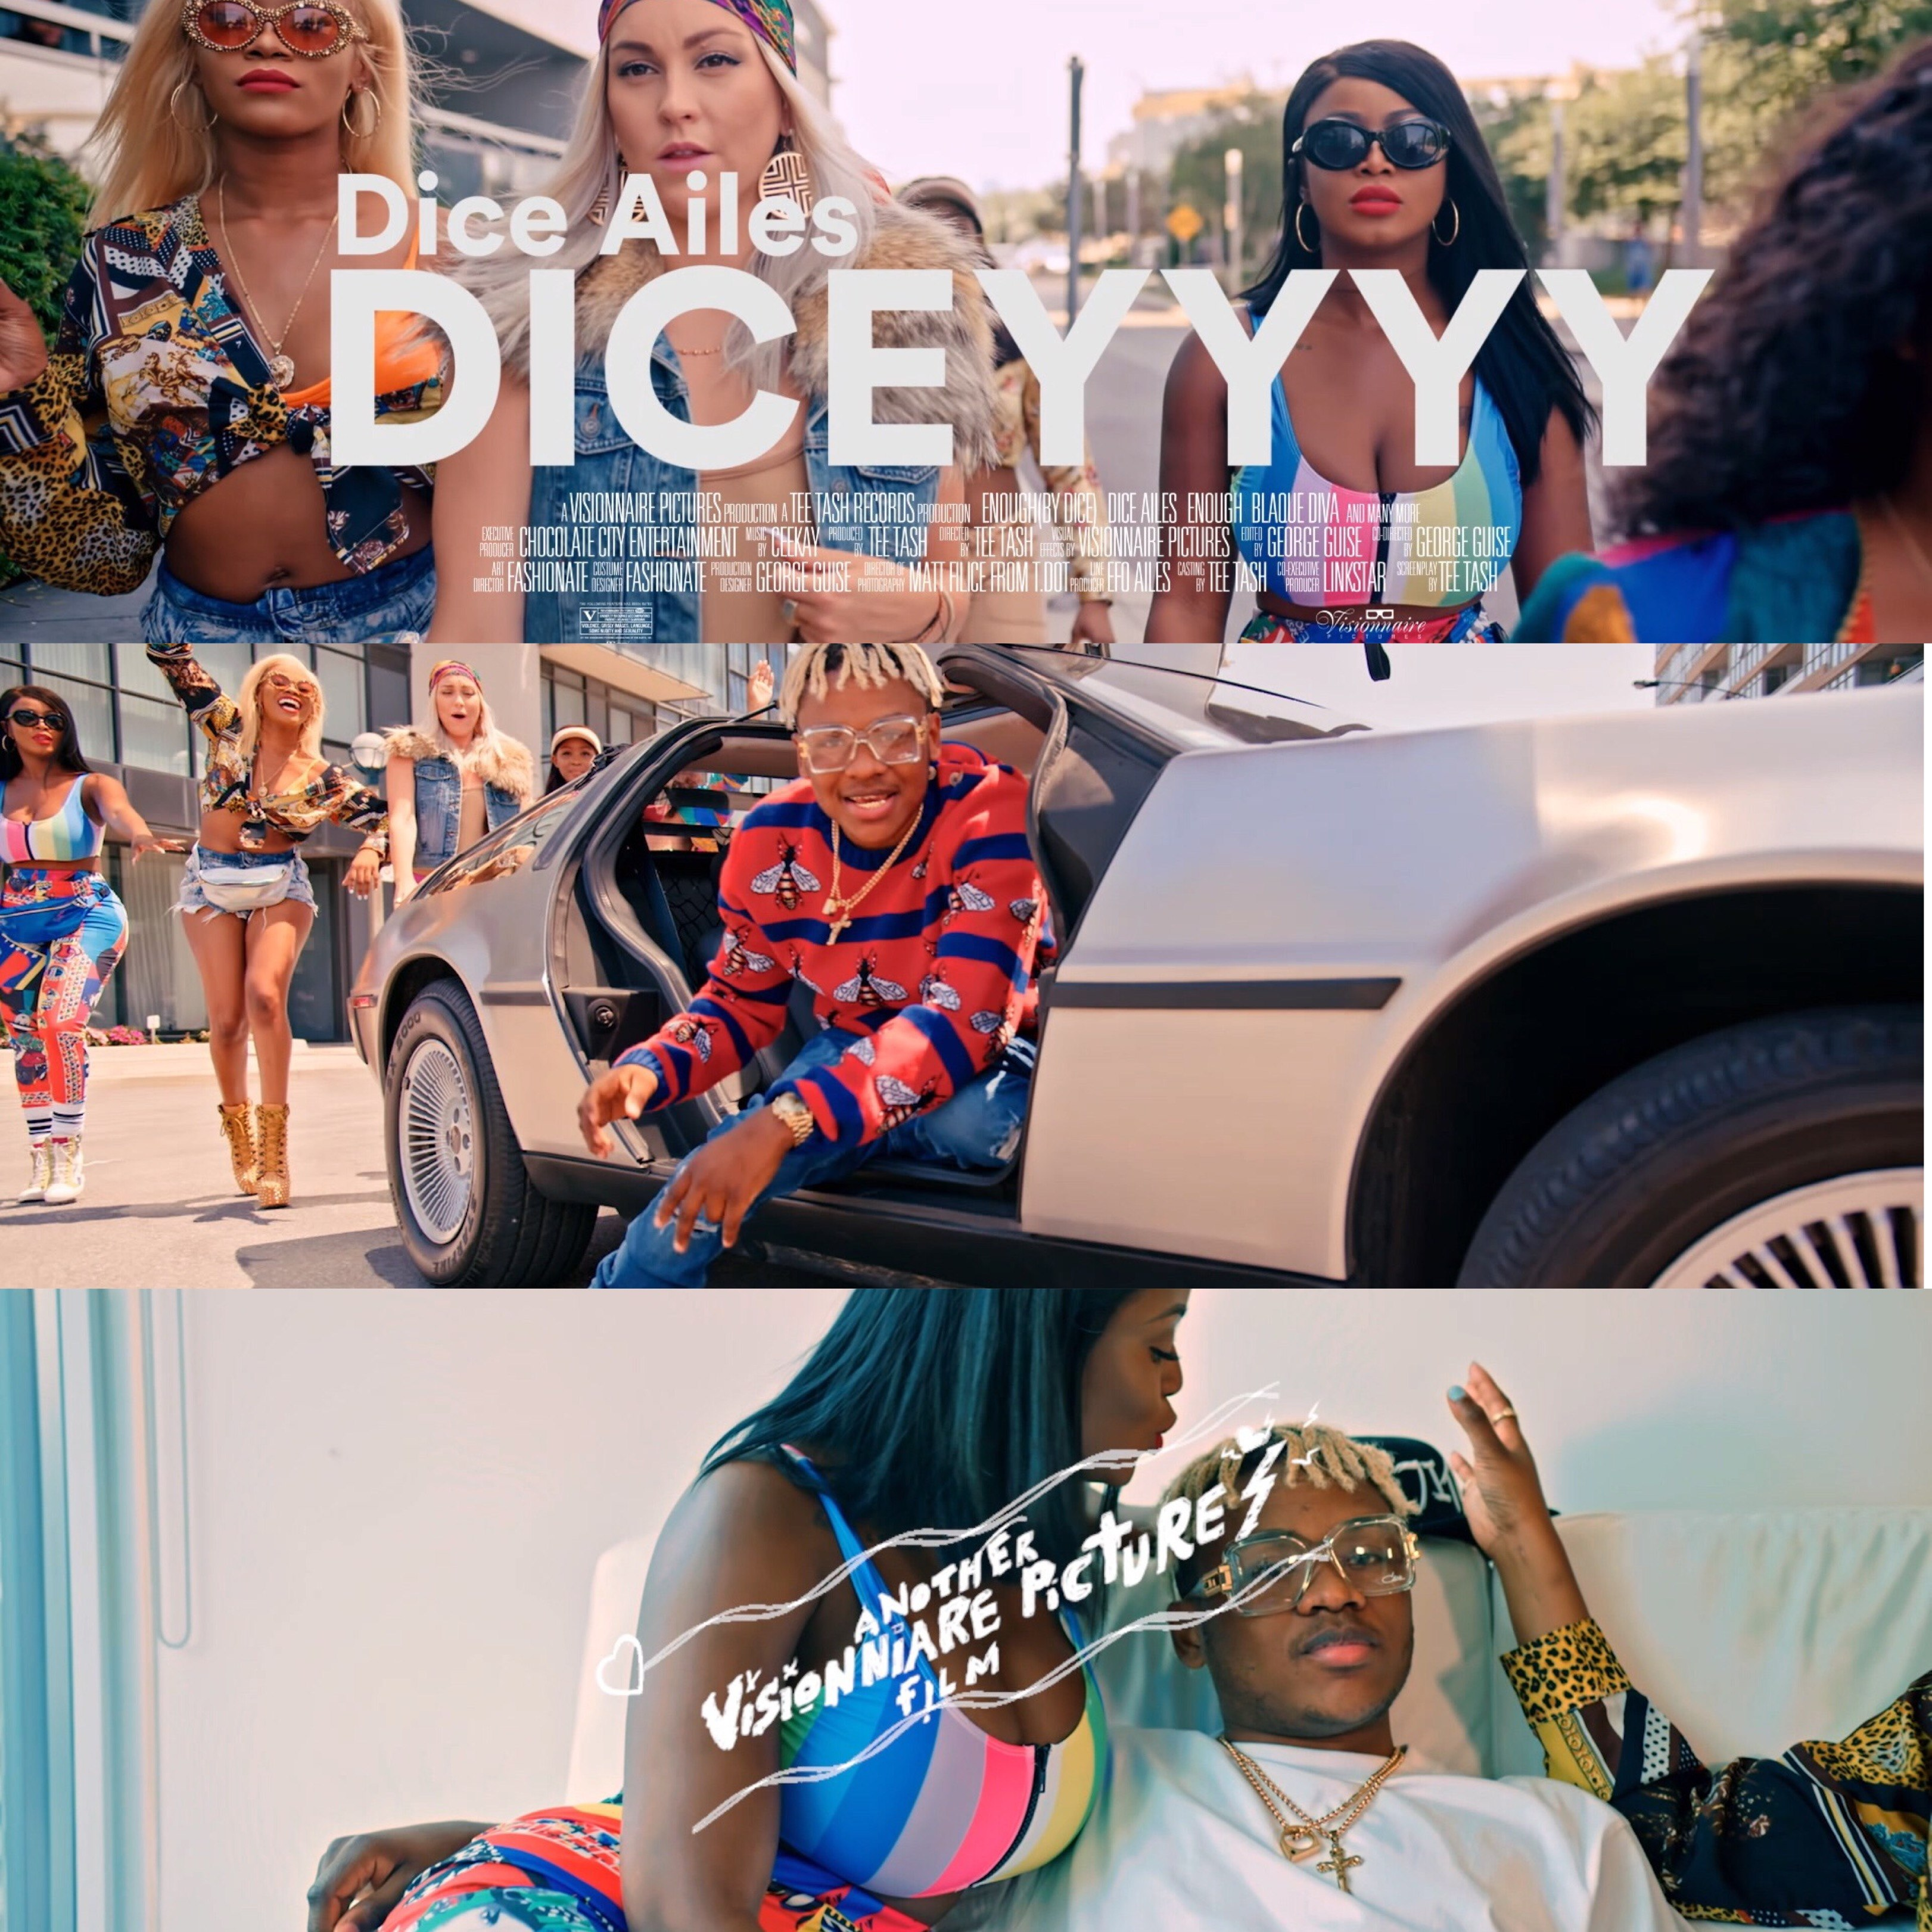 New Video Dice Ailes Diceyyy Pulse Nigeria